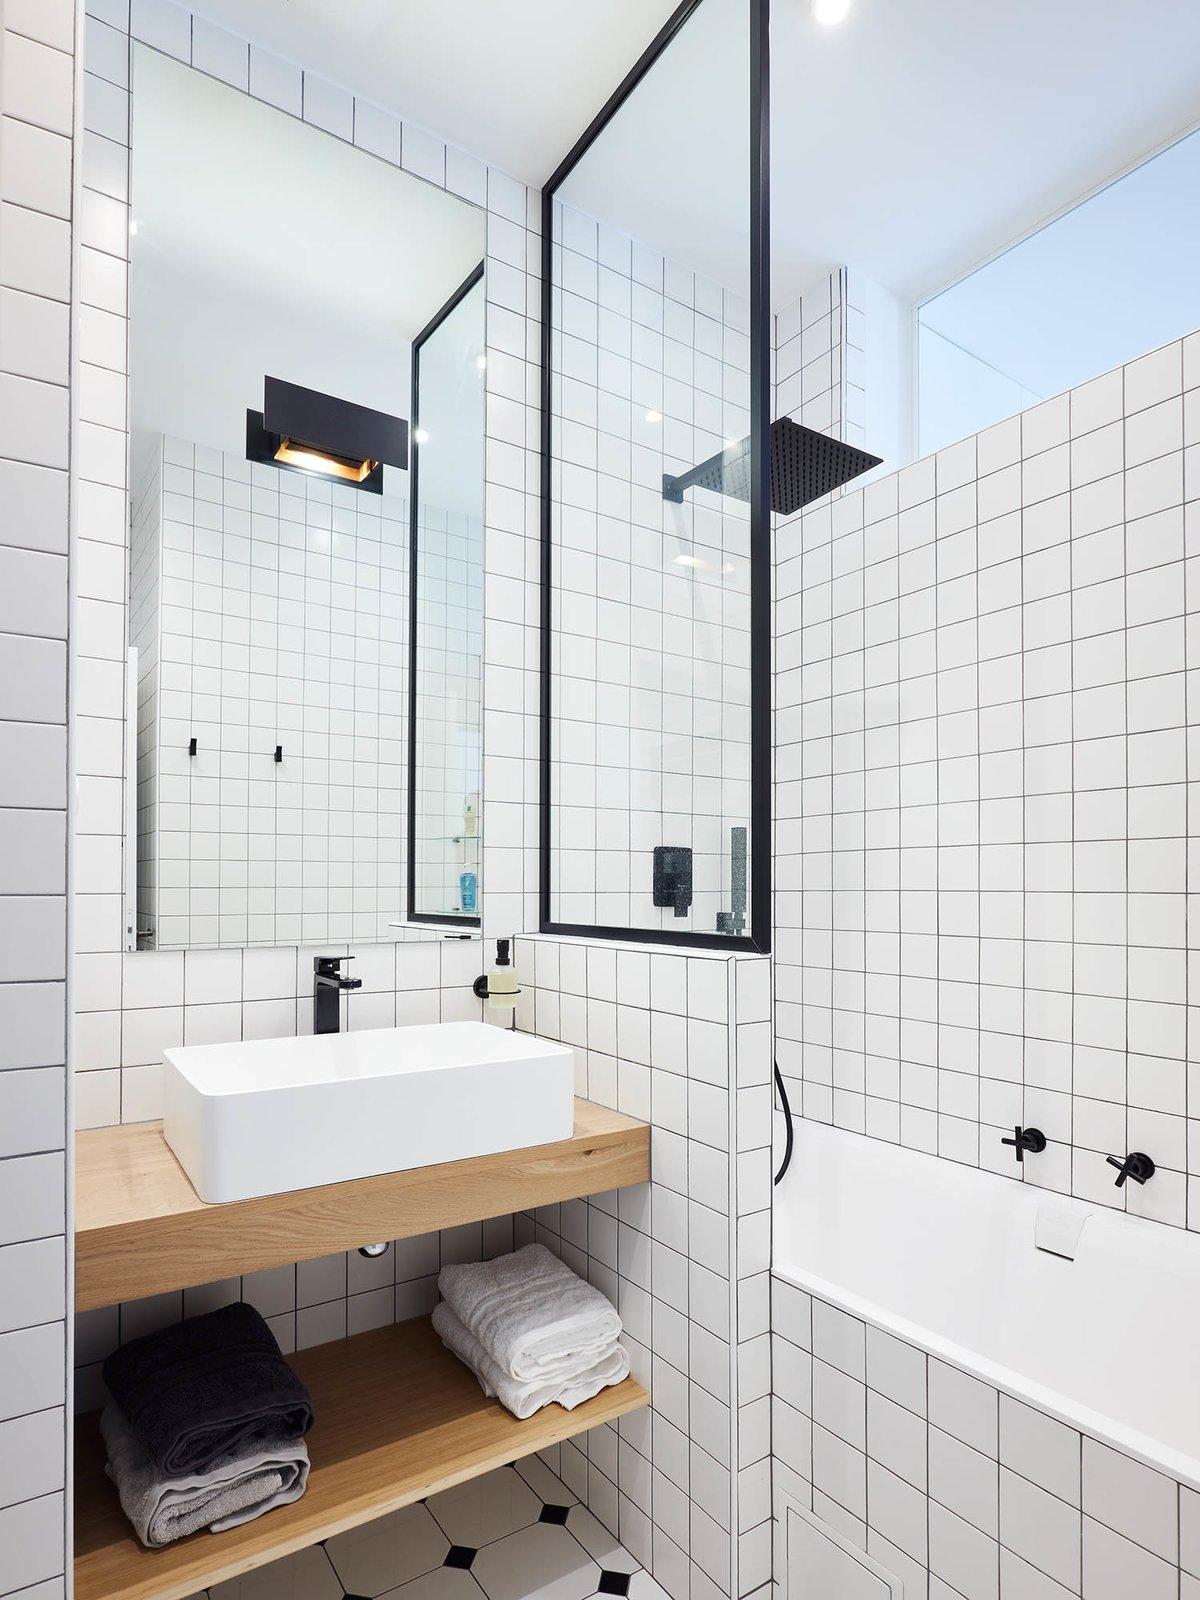 Bath, Wood, Ceiling, Porcelain Tile, Porcelain Tile, Wall, Corner, Alcove, and Vessel To add balance and interest, the architect contrasted the texture of oak shelving with the sleek finish of glossy white tile in the bathroom.   Bath Corner Vessel Alcove Photos from Budget Breakdown: A Muddled Parisian Pad Gets a Sleek Makeover for $117K